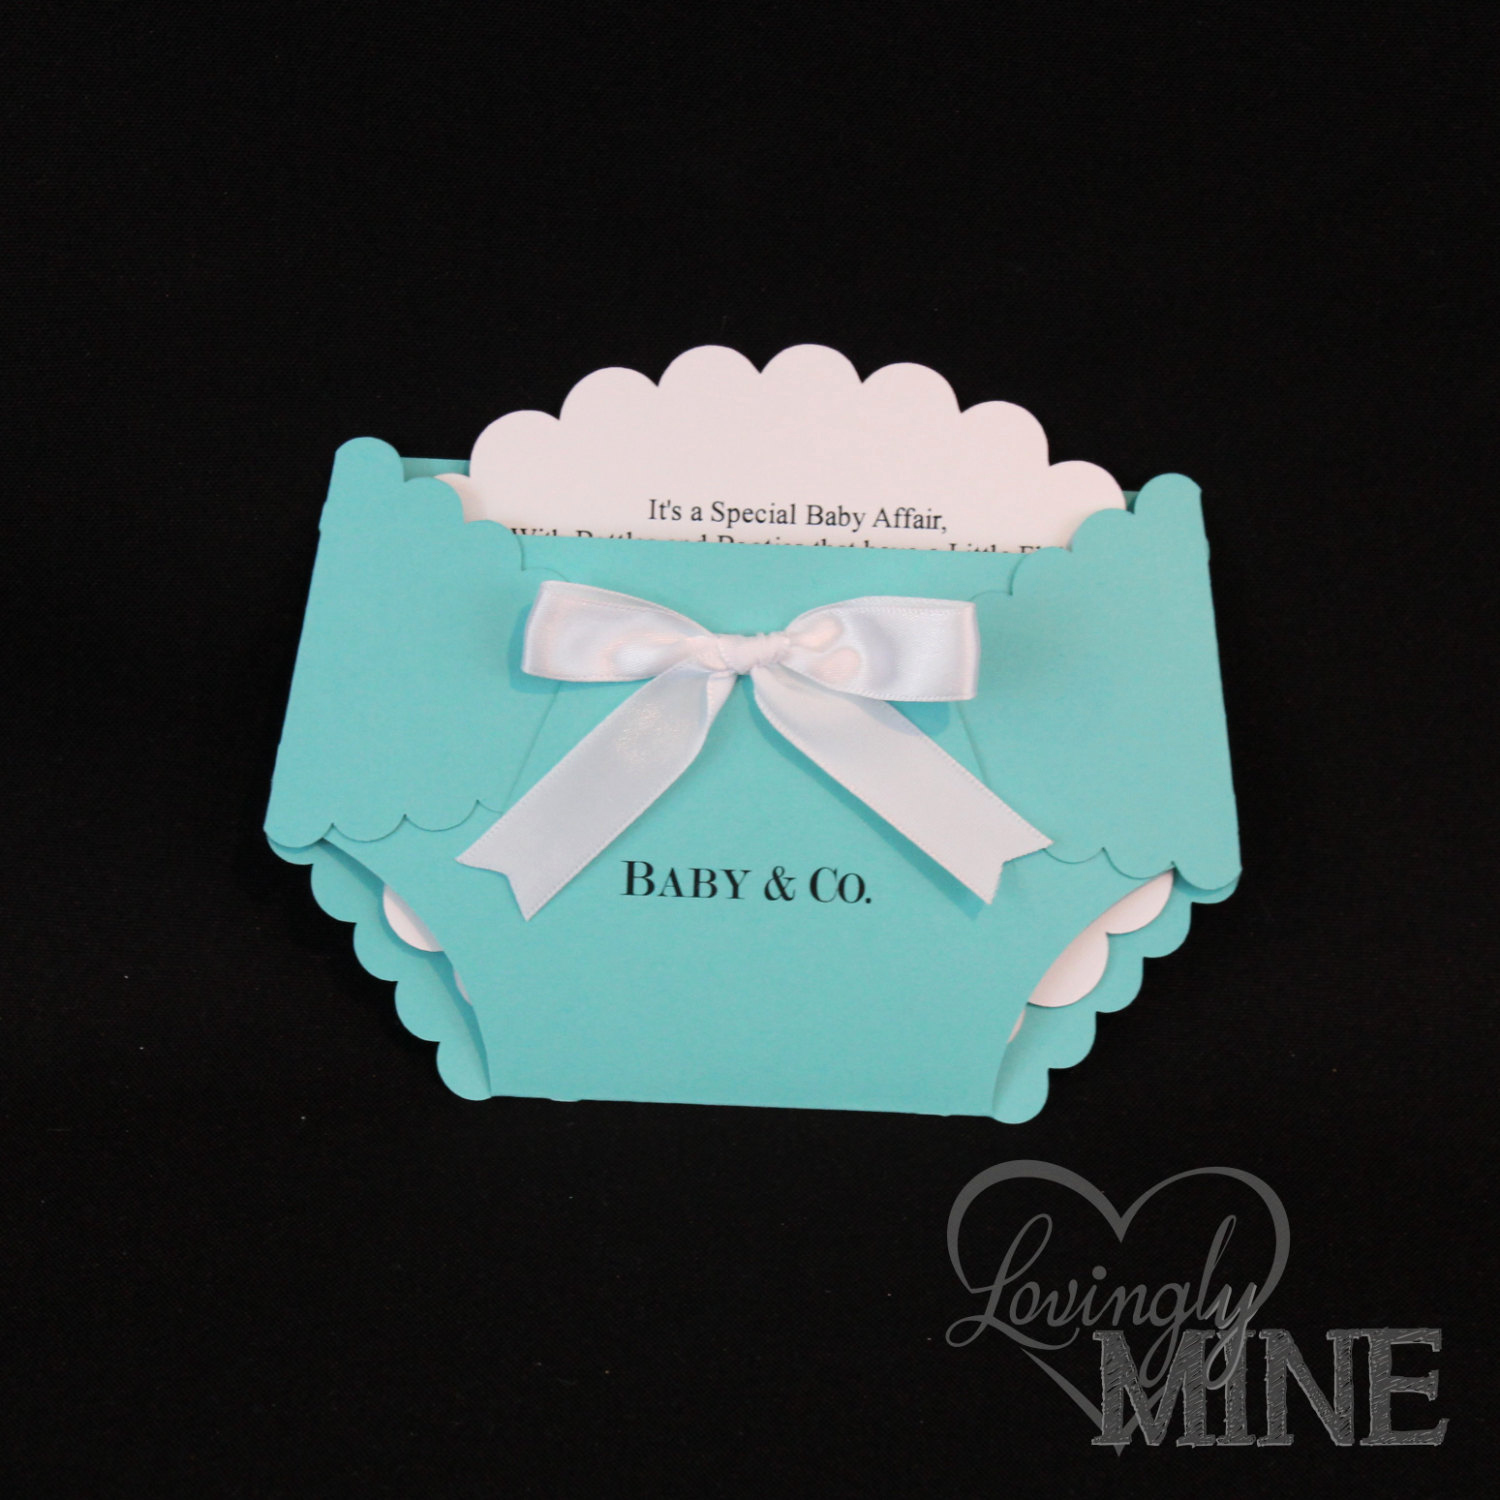 Cloth Diaper Baby Shower Invitation Inspirational Popular Items for Diaper Image